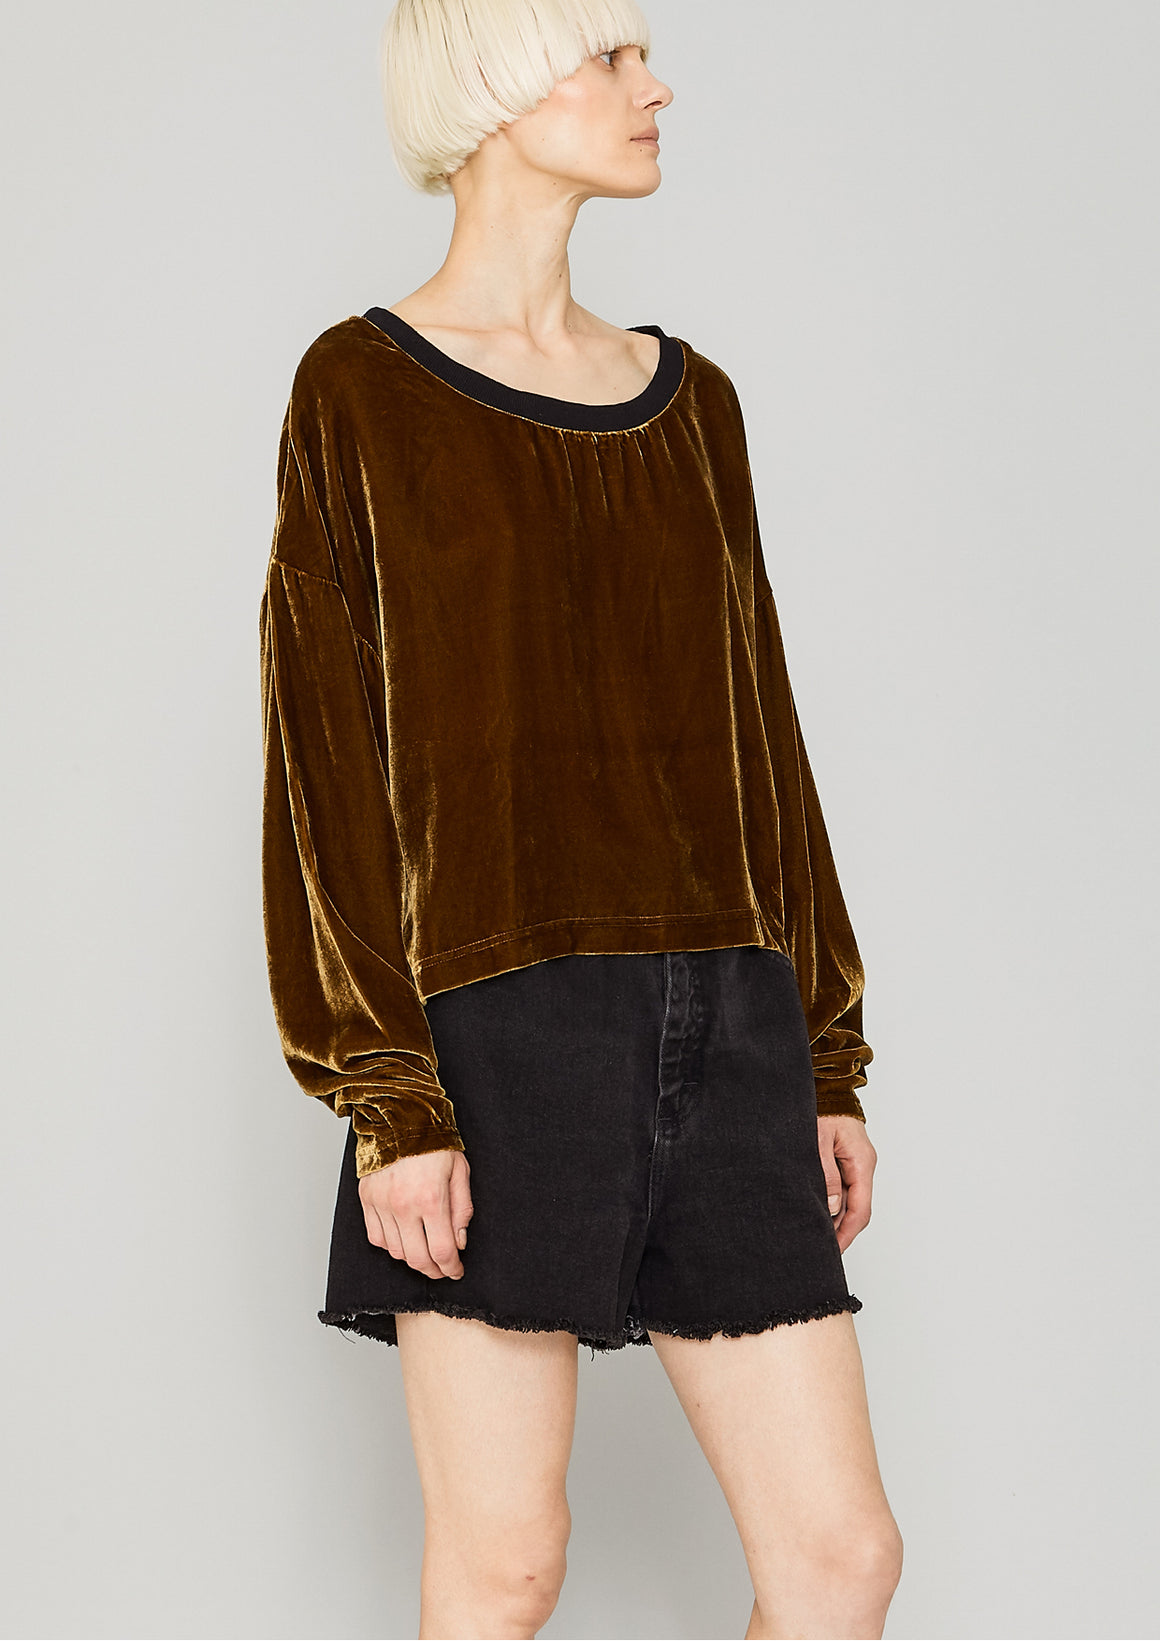 SHIRT LONG SLEEVES - SILK VELVET gold